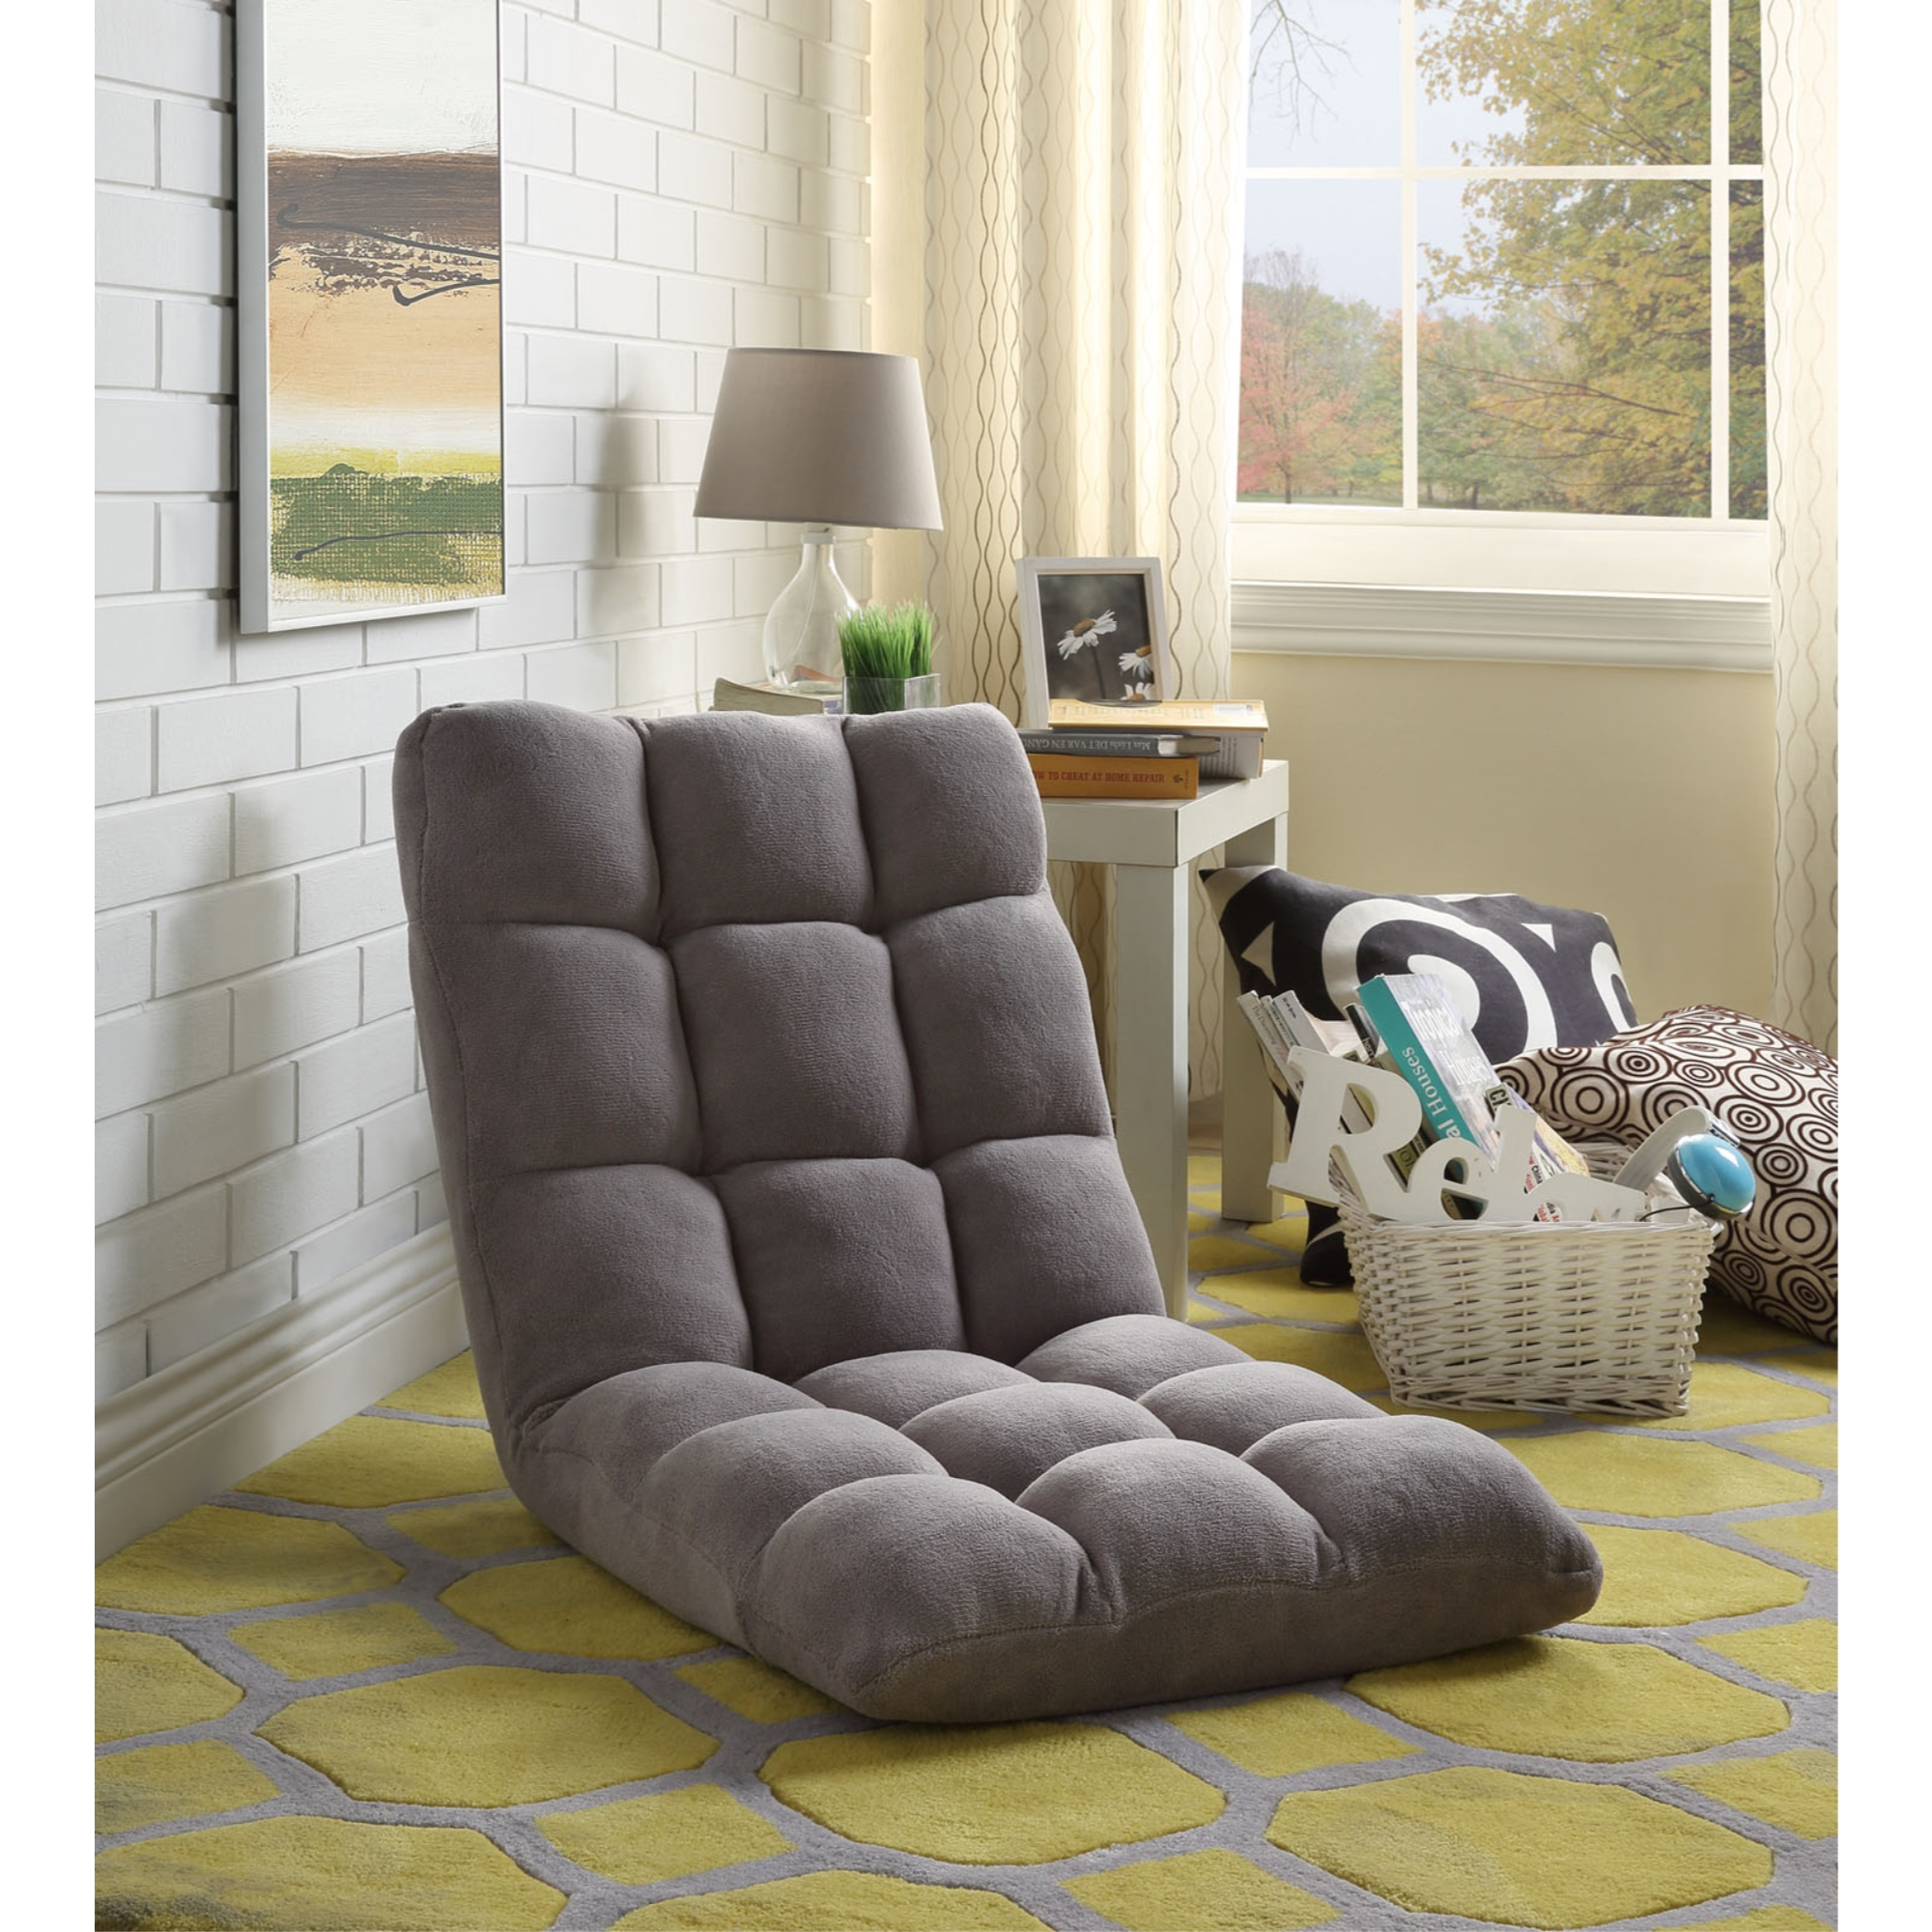 Loungie Grey Microplush Chair Foam Filling Steel Tube Frame